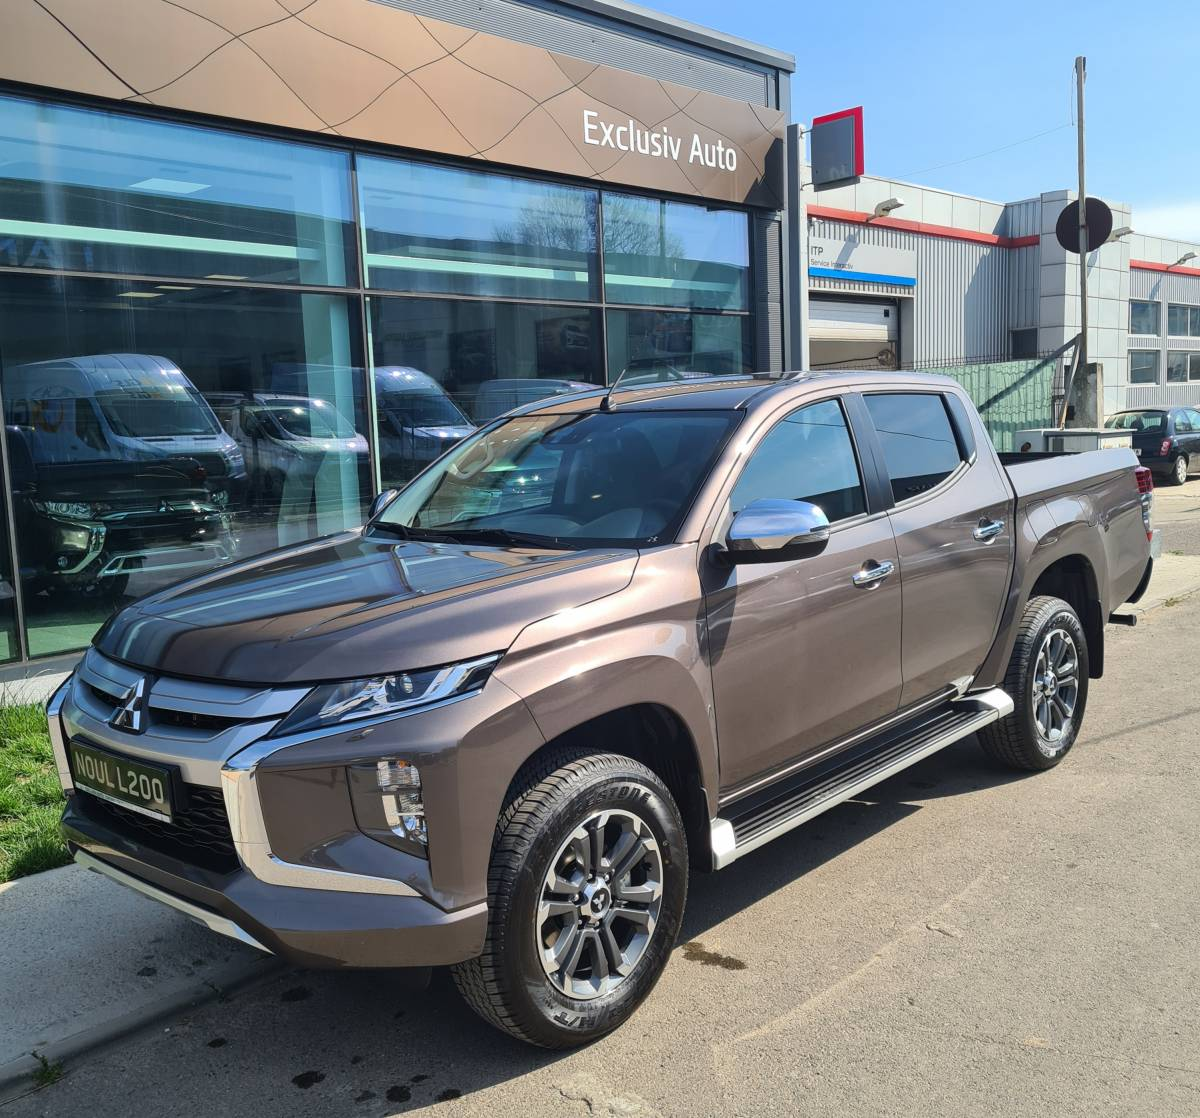 MY20 L200 Double Cab 4WD 2.2 DID 6M/T Intense : Mitsubishi L200 DOUBLE CAB